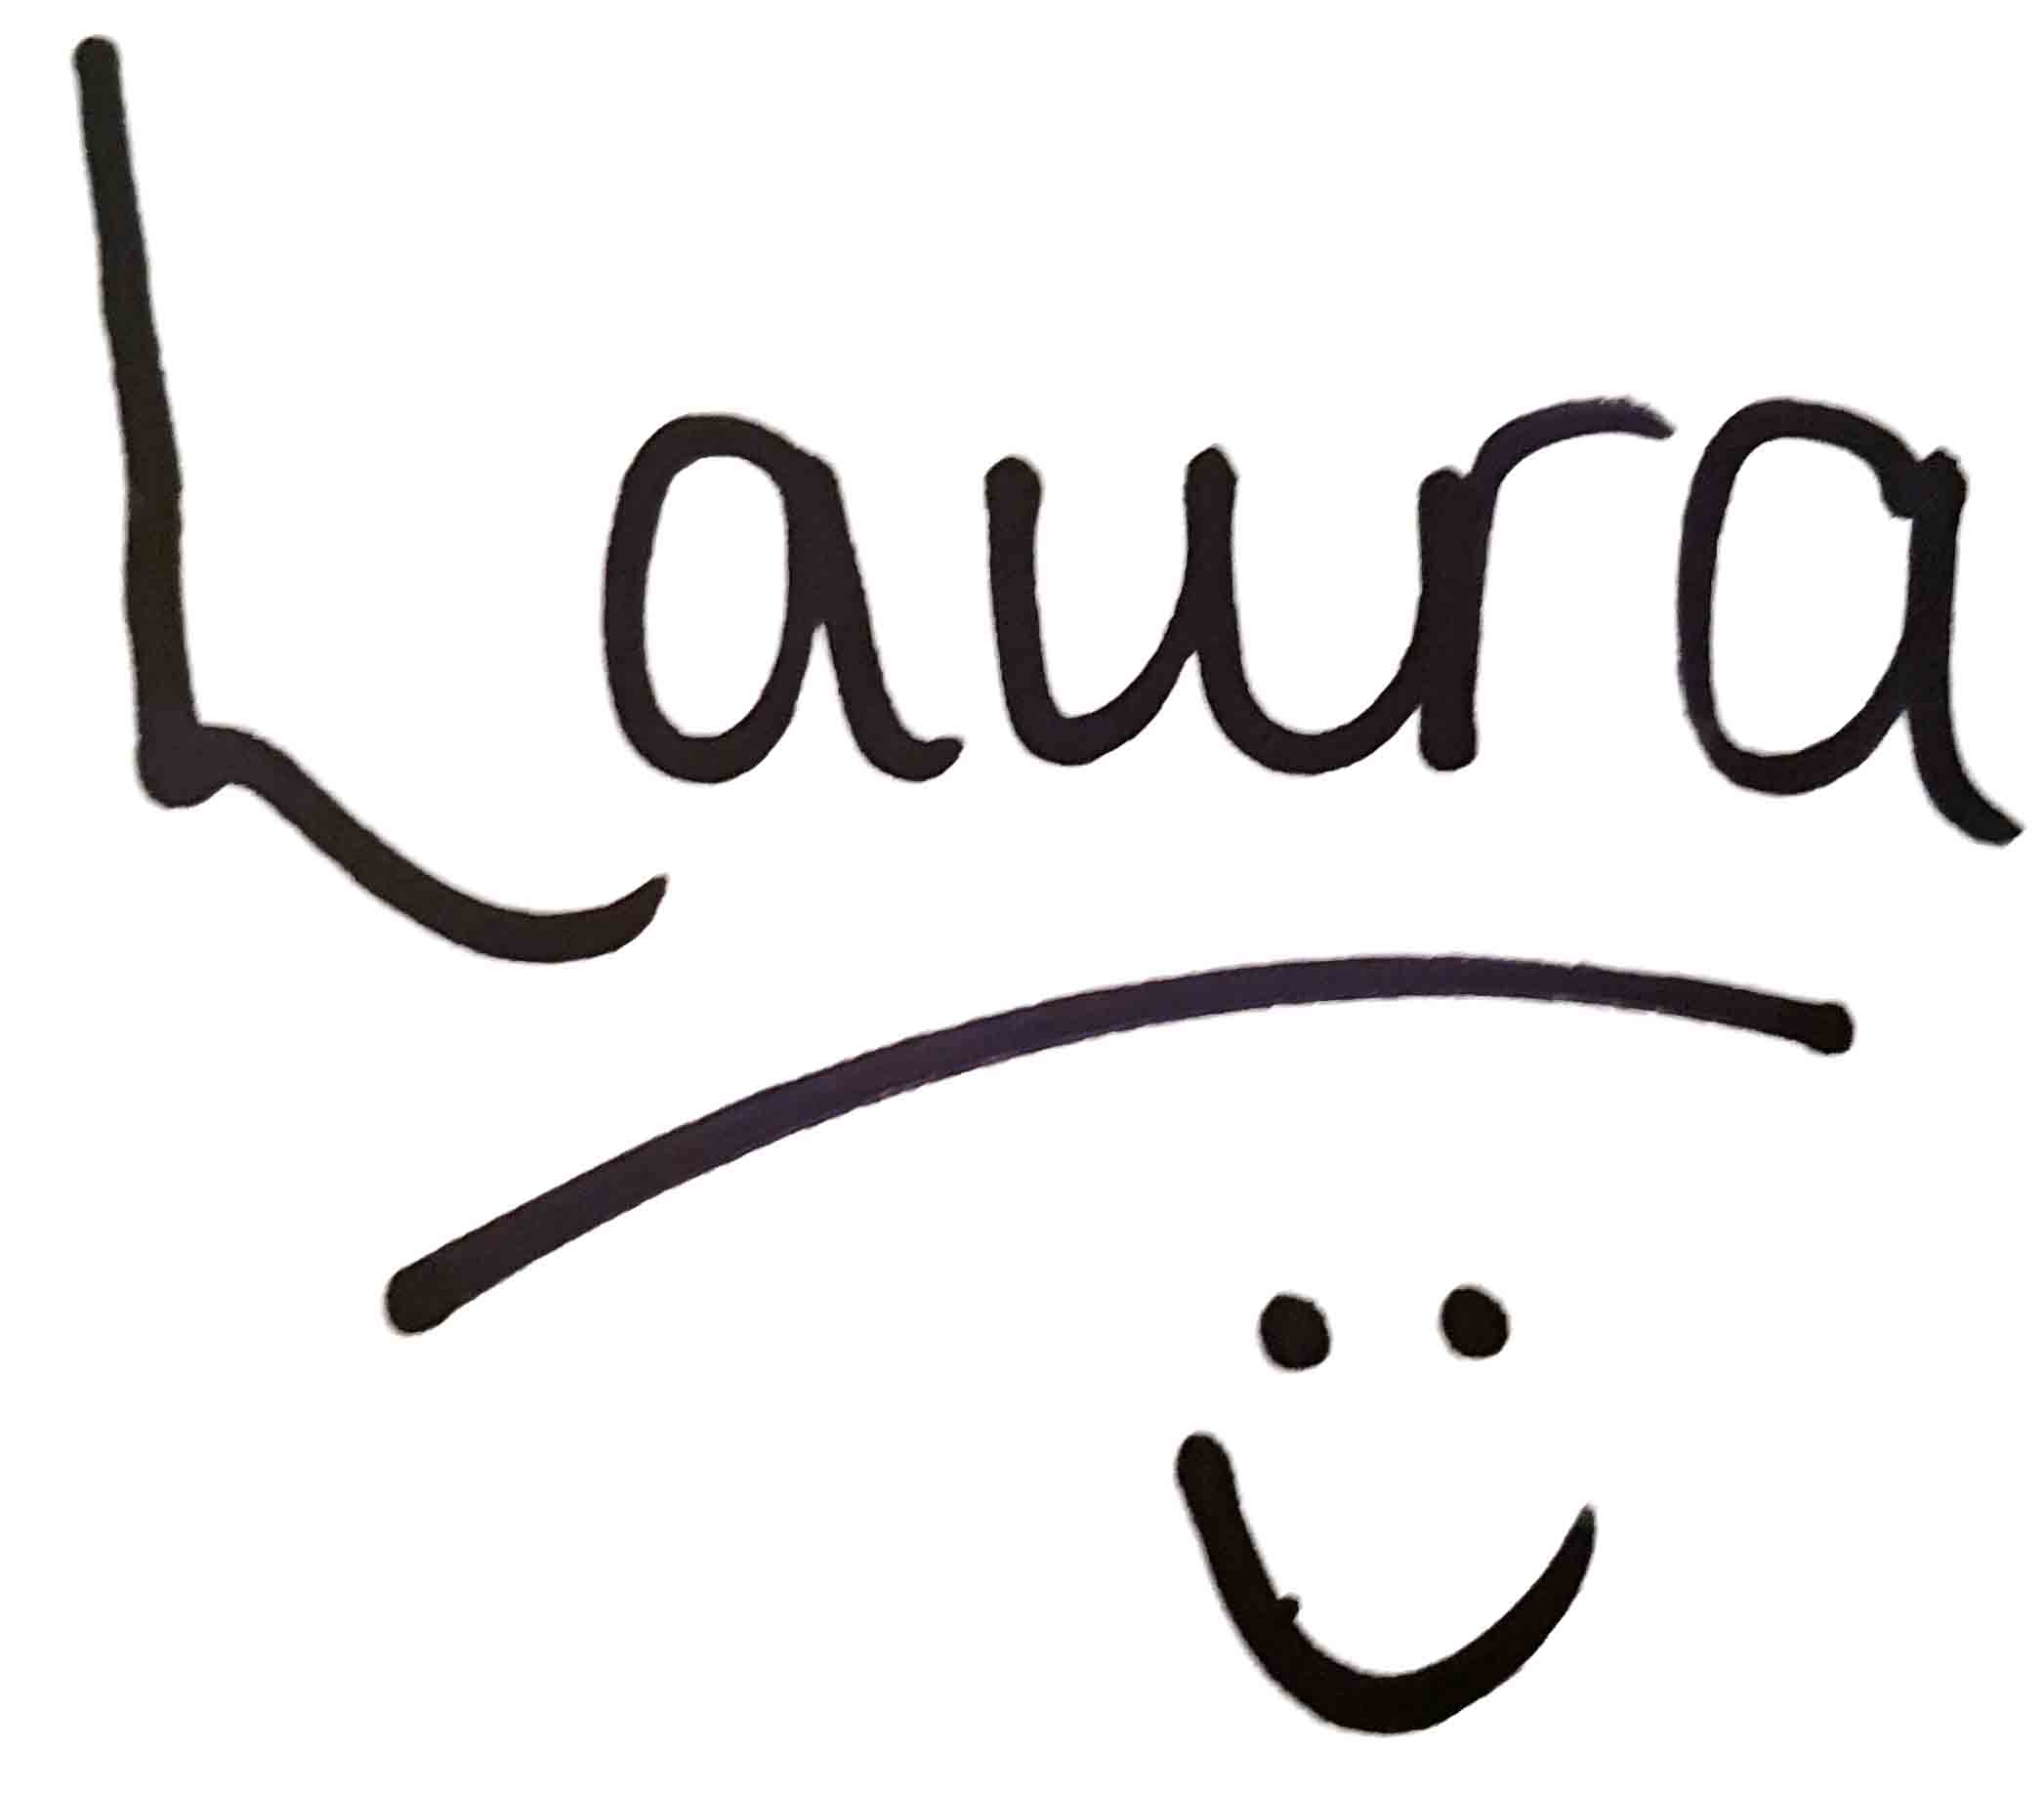 Laura Signature Extracted Lowest Res